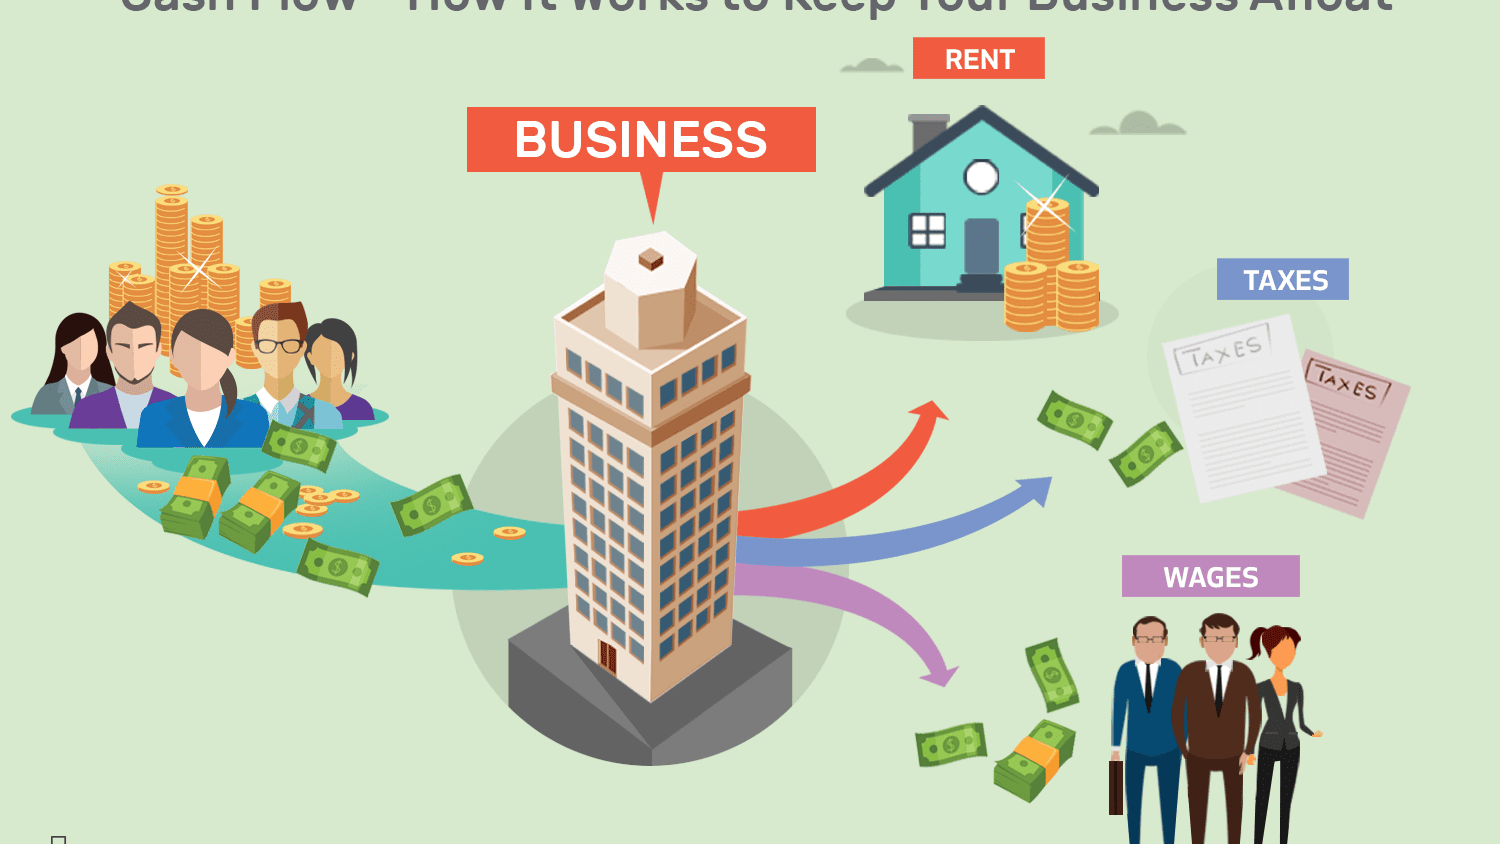 Cash flow-How it works to keep your business afloat